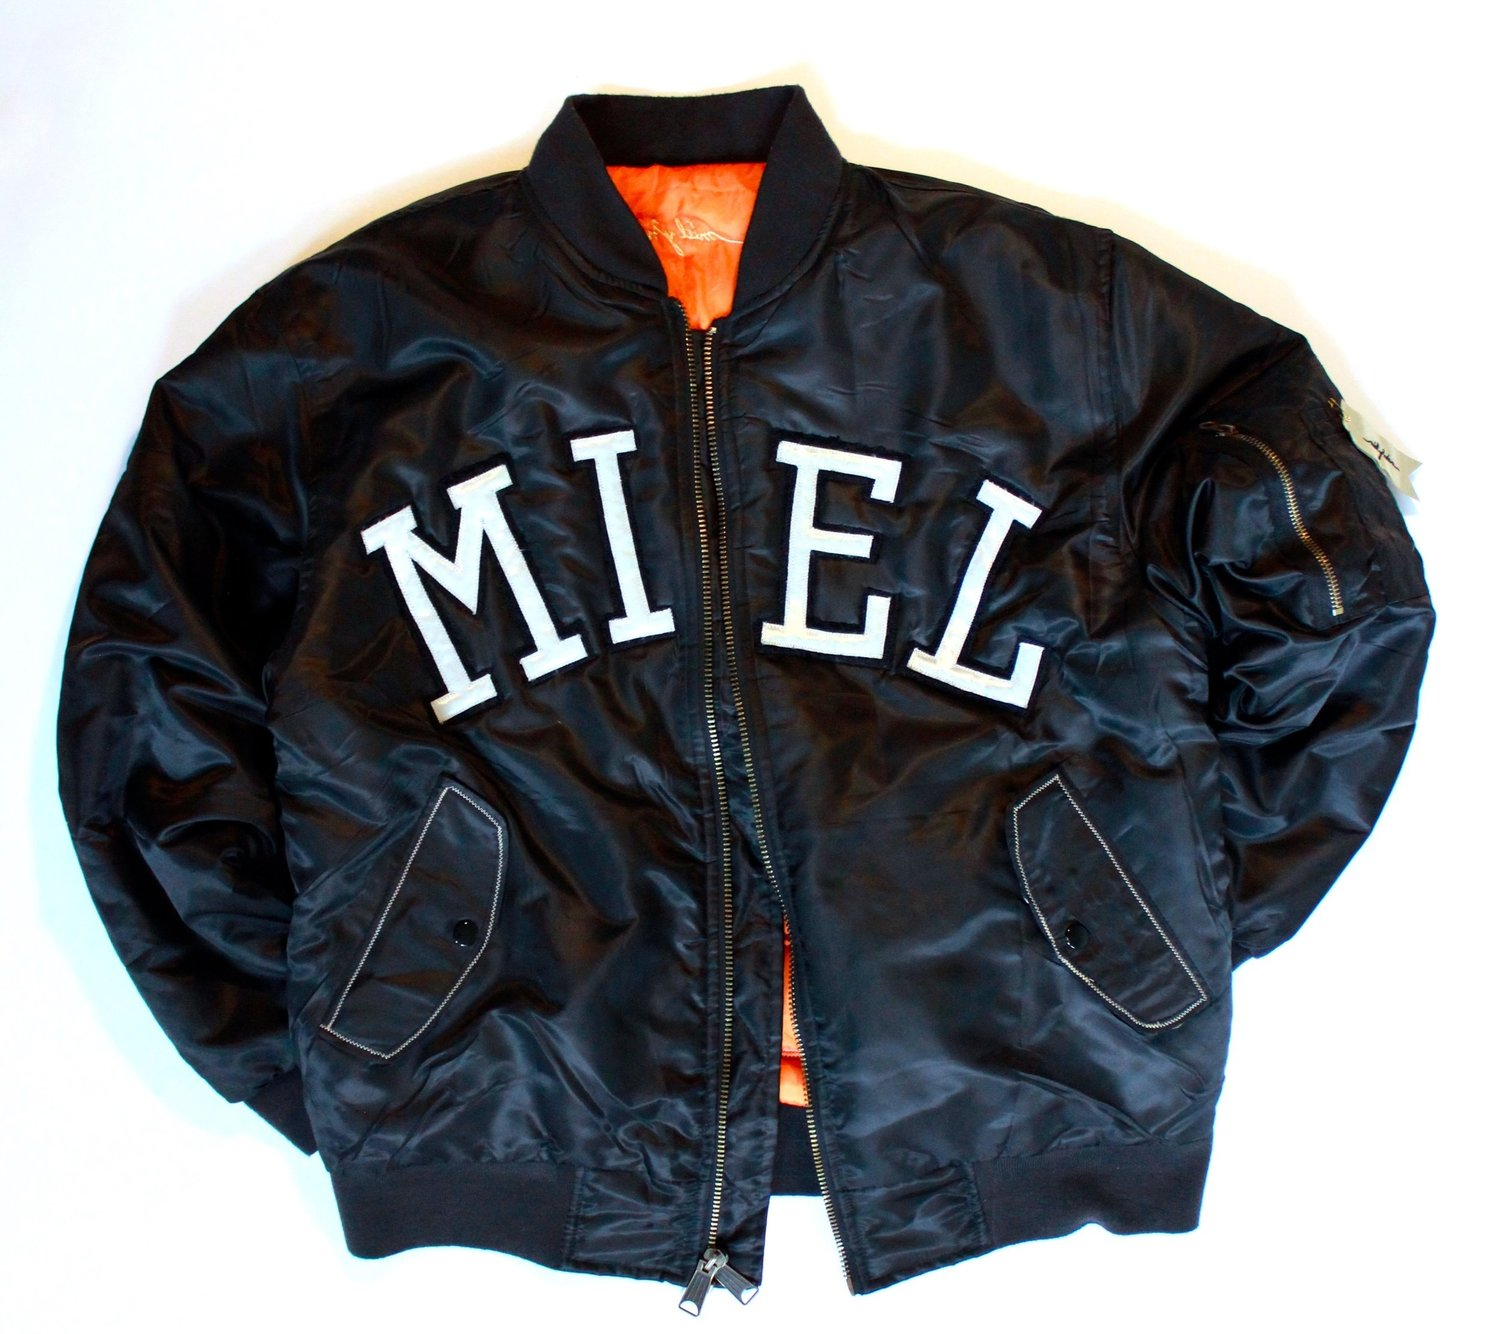 MIEL Y NOIR // 'Abeilles' Military Flight Jacket — MIEL Y NOIR ...